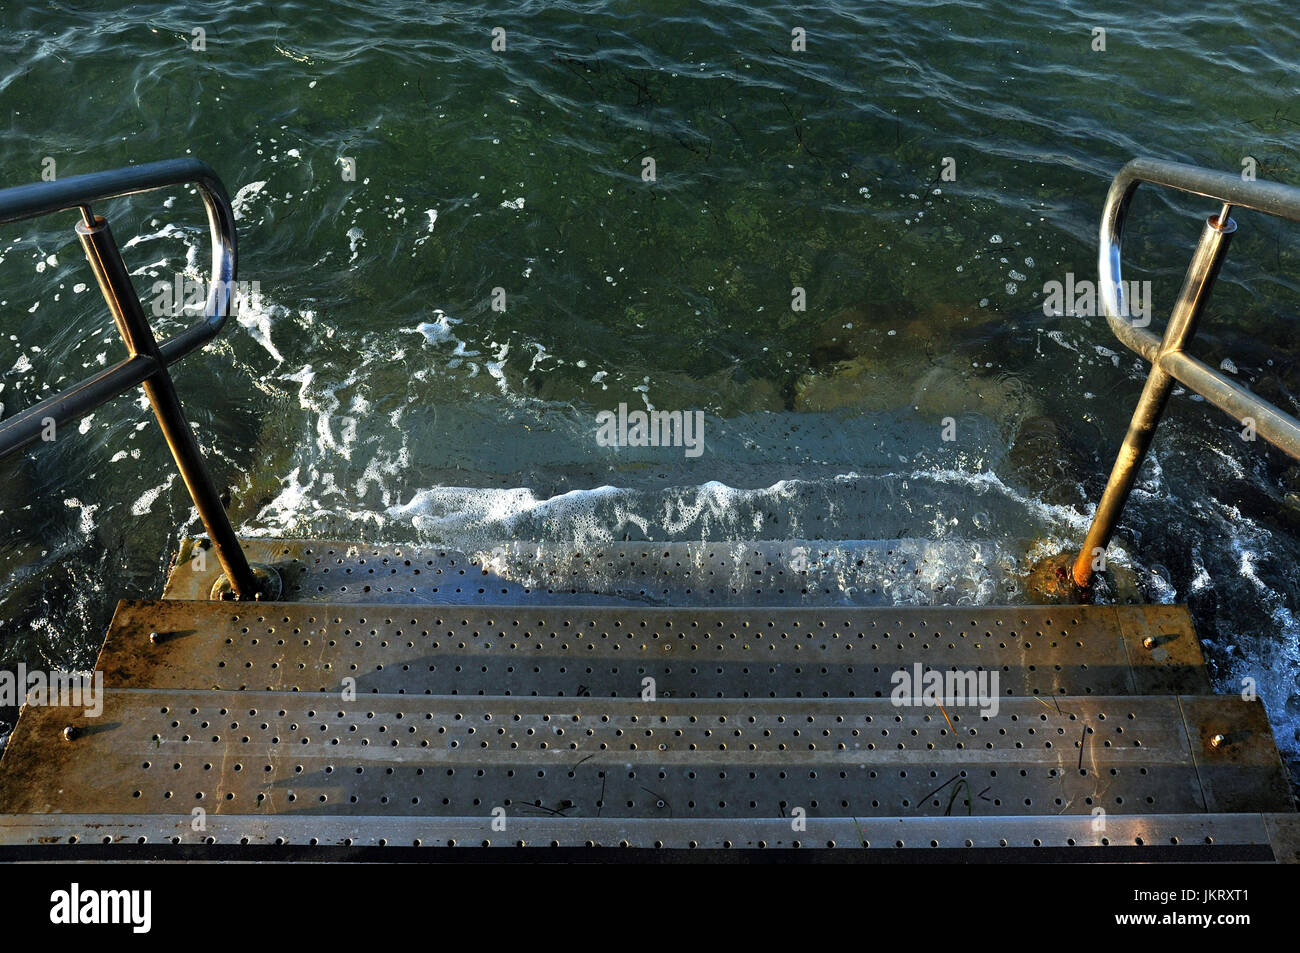 Stairs with handles into the sea, stairway into water, sea stairs Stock Photo